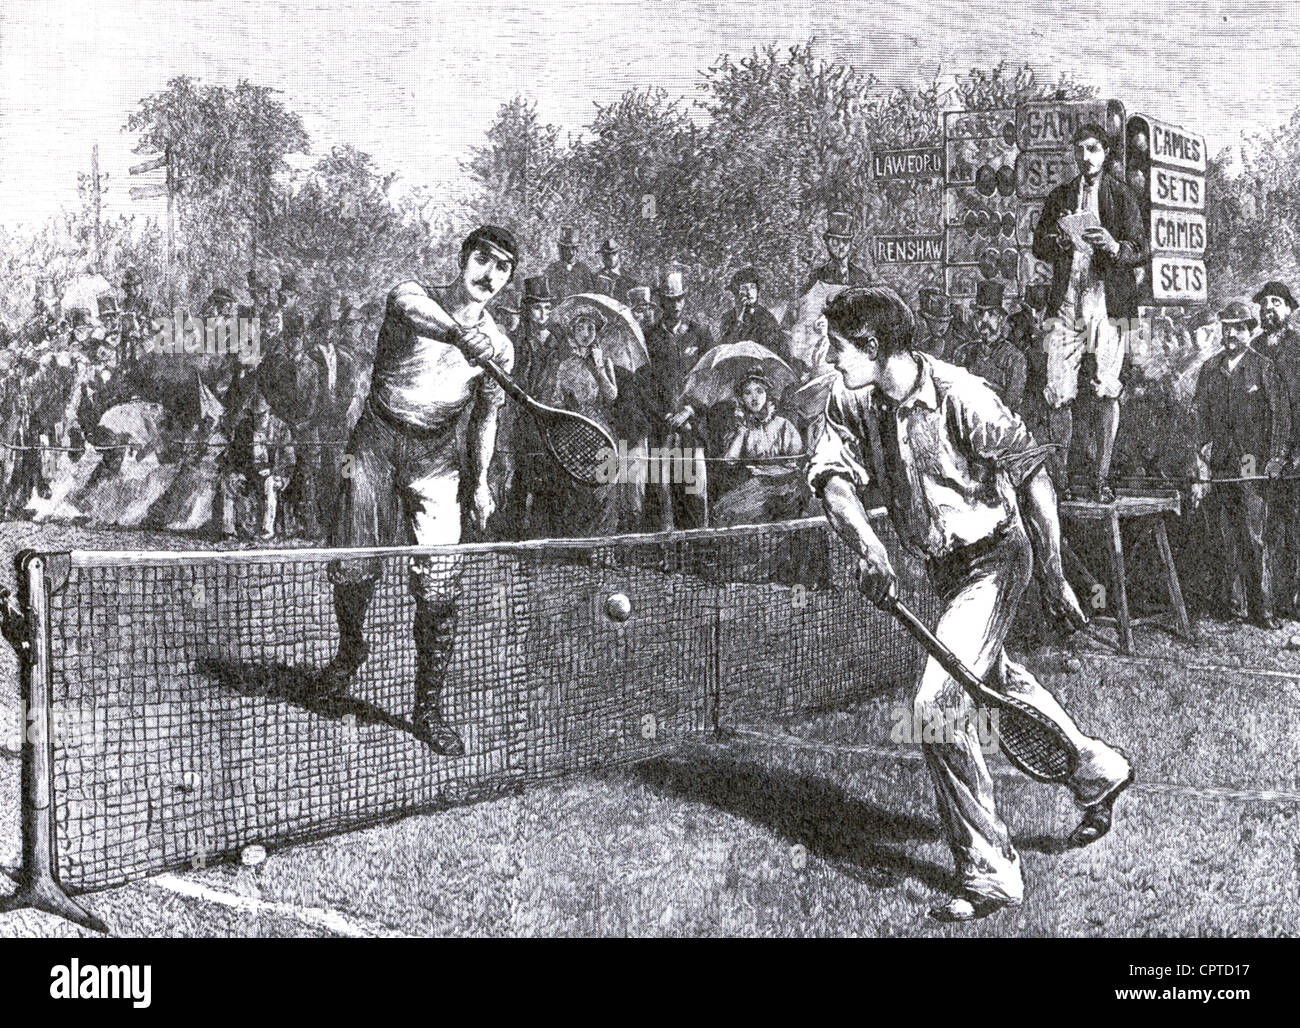 WIMBLEDON 1881 MEN S SINGLES match between William Renshaw at left